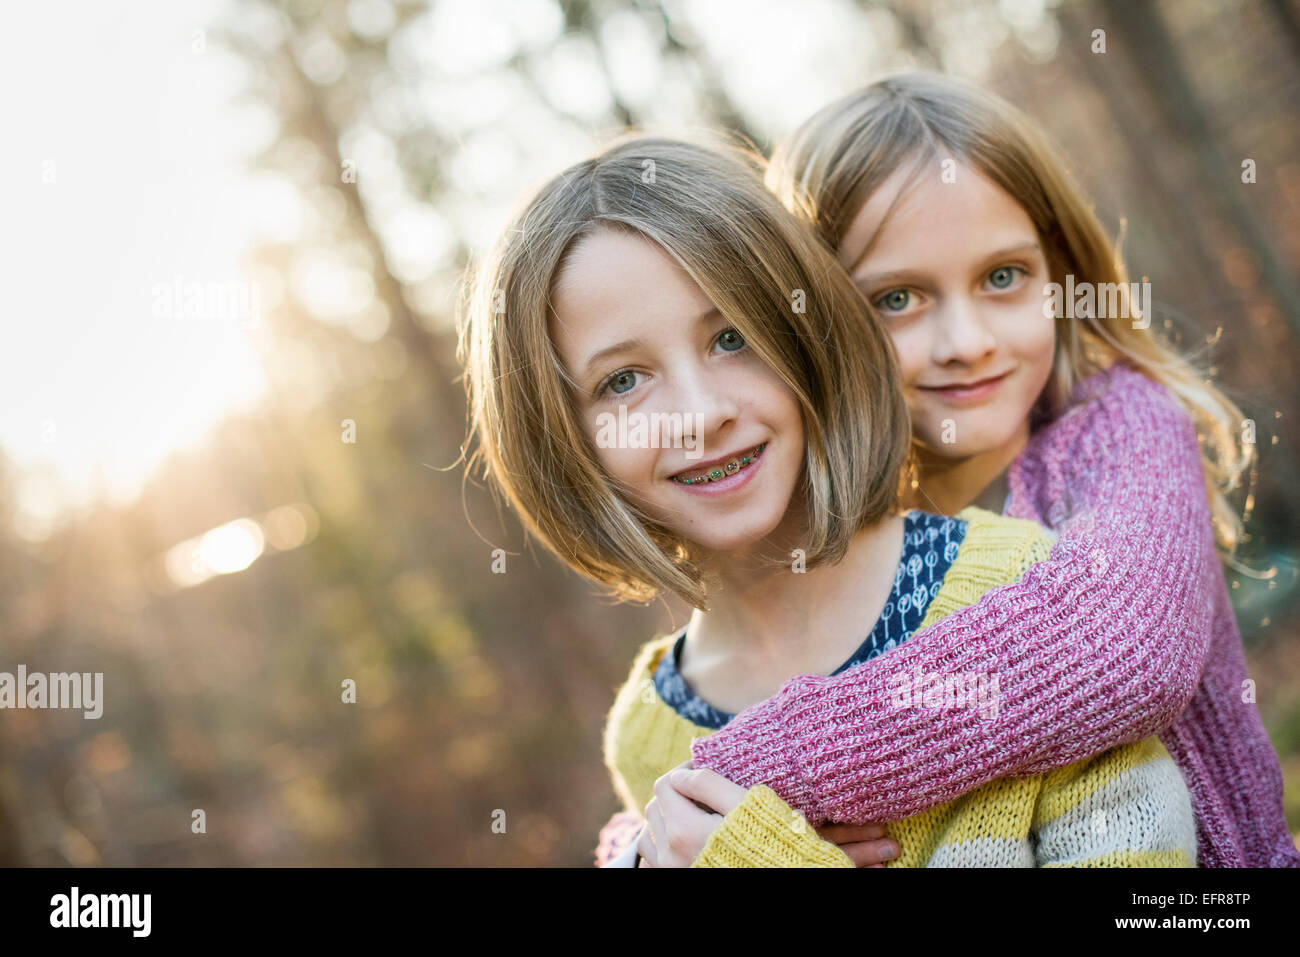 Two smiling girls in a forest, hugging each other. - Stock Image